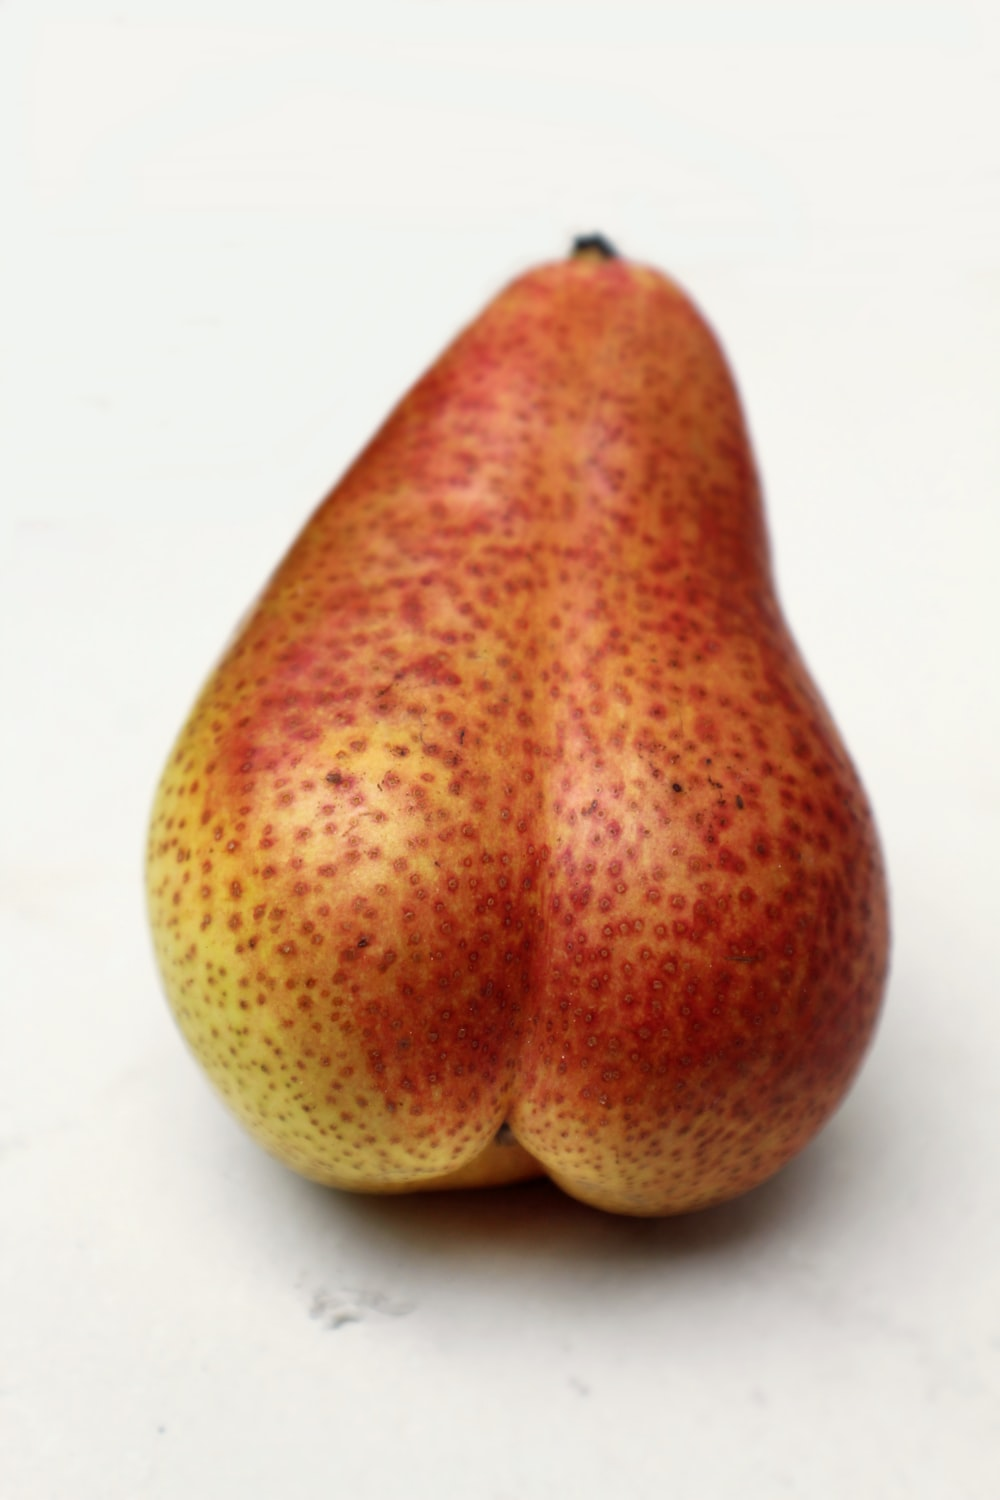 red and yellow pear on white surface